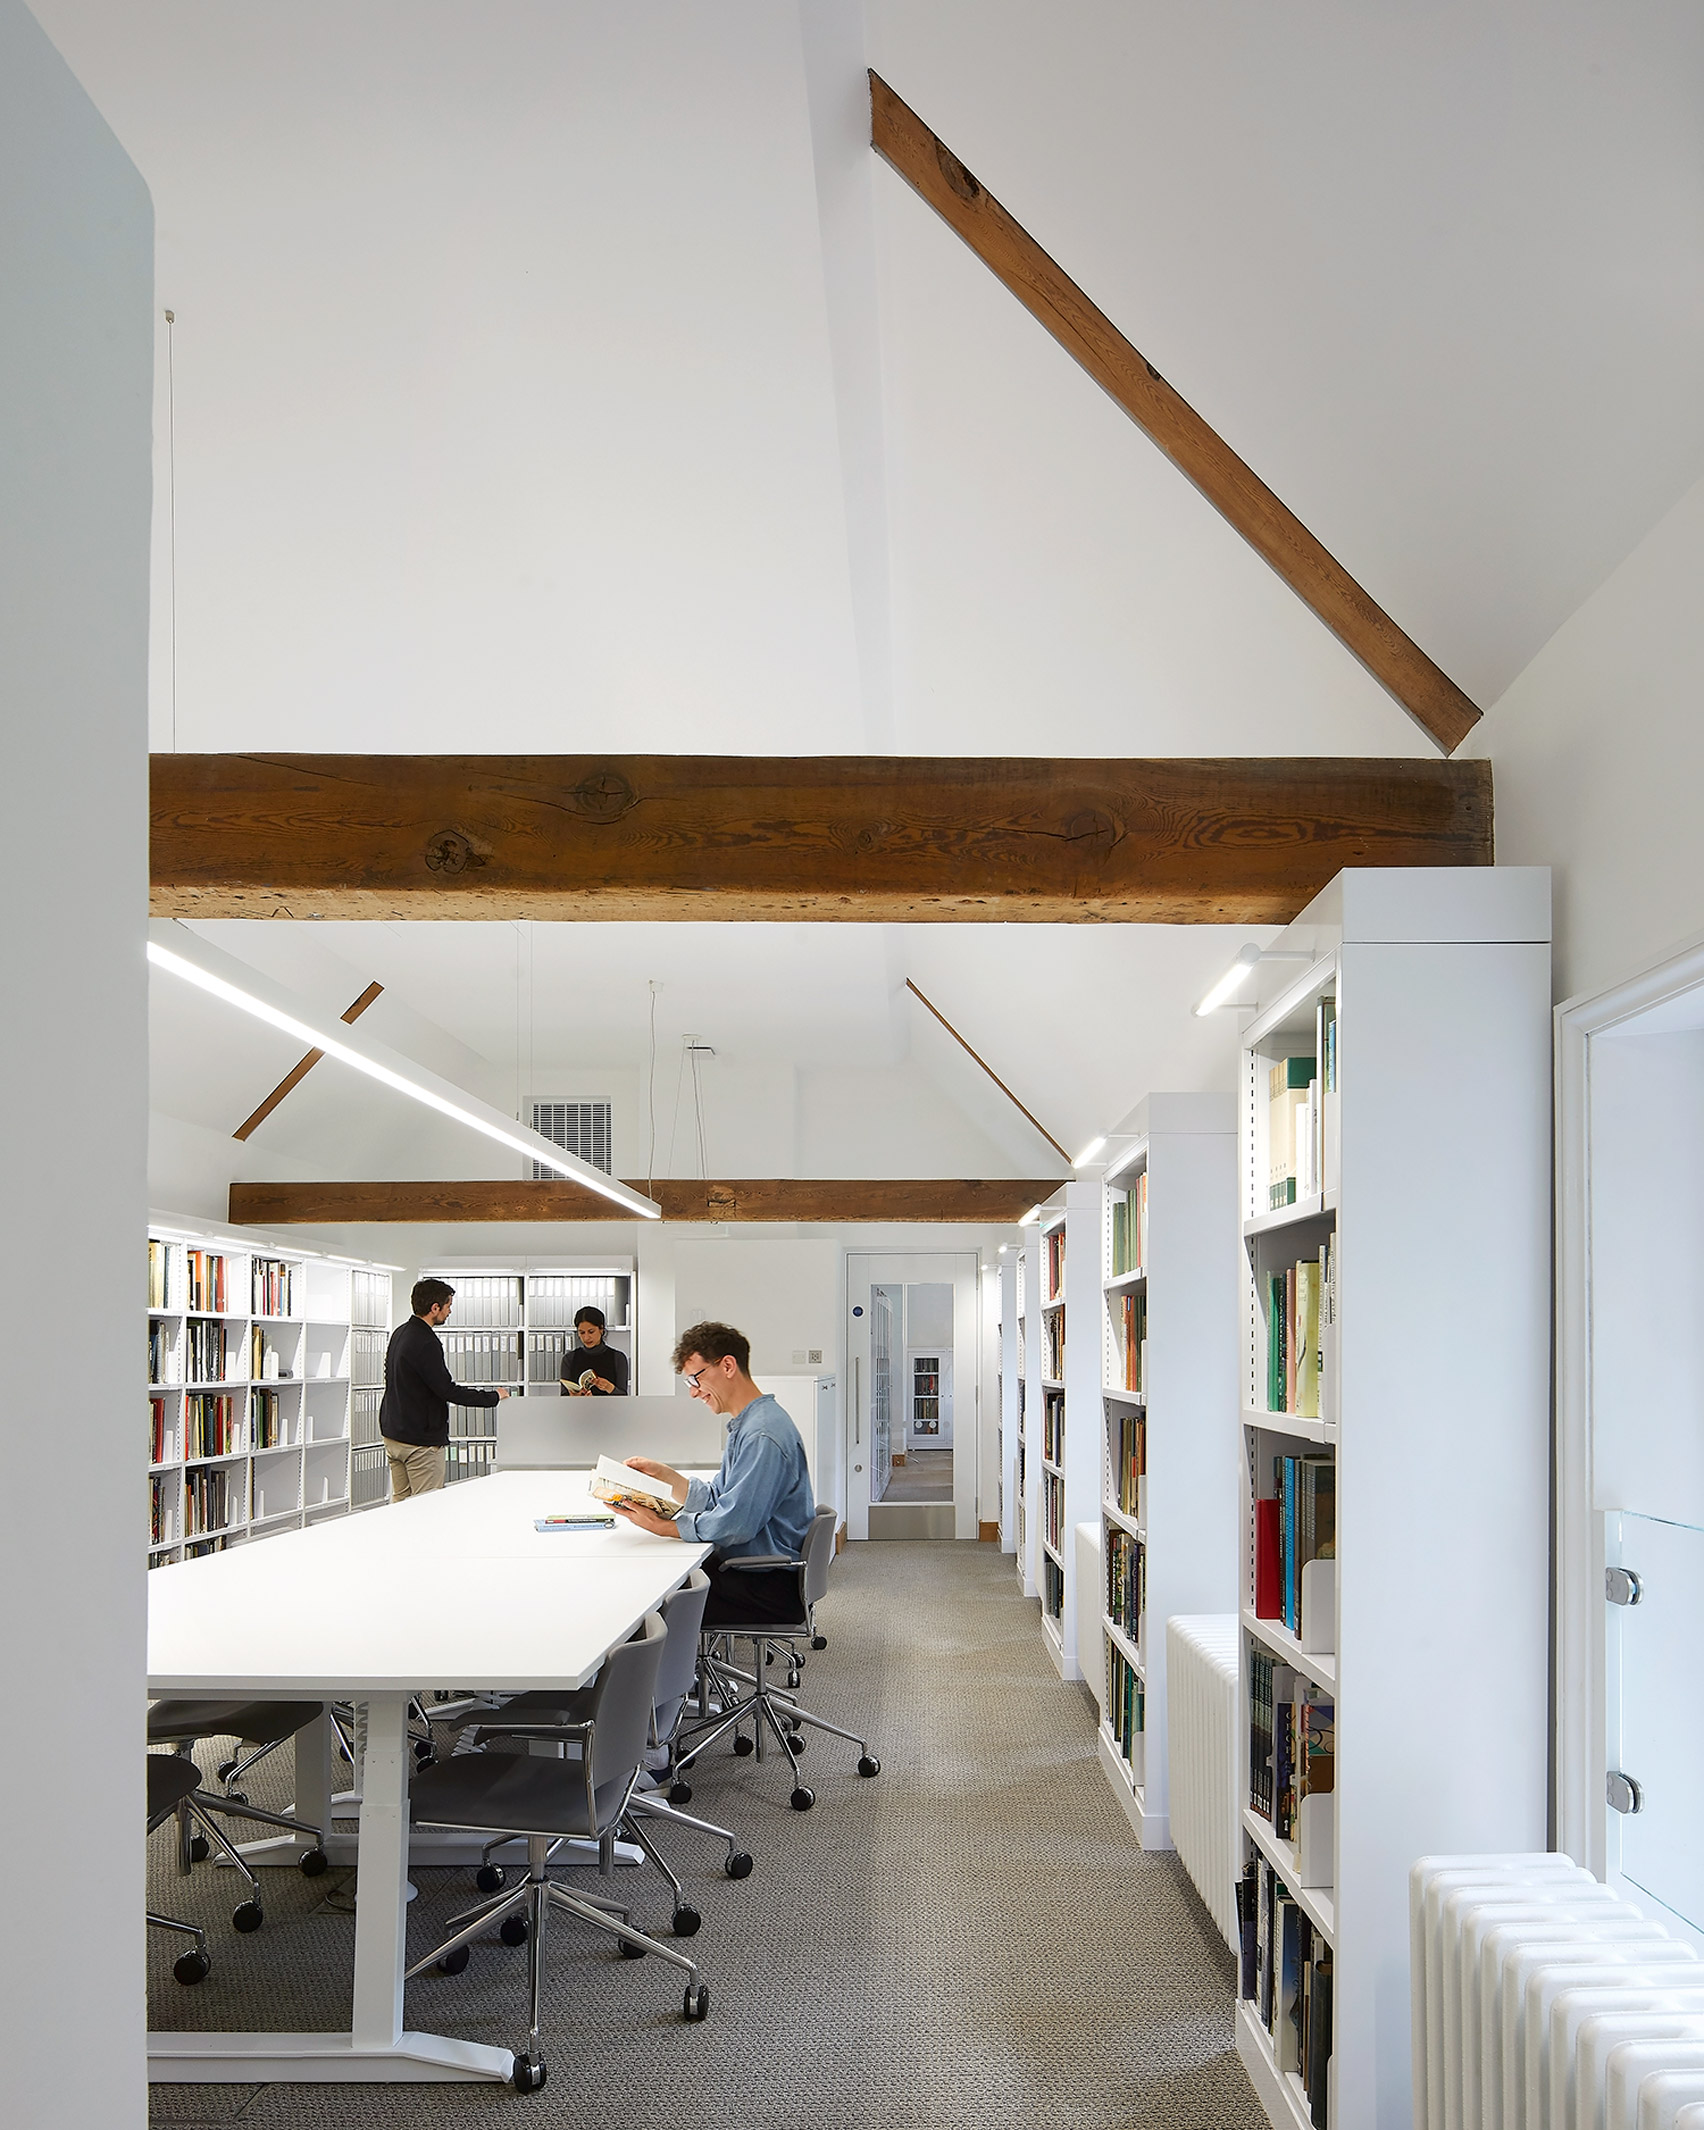 A white-walled library with exposed wooden beams